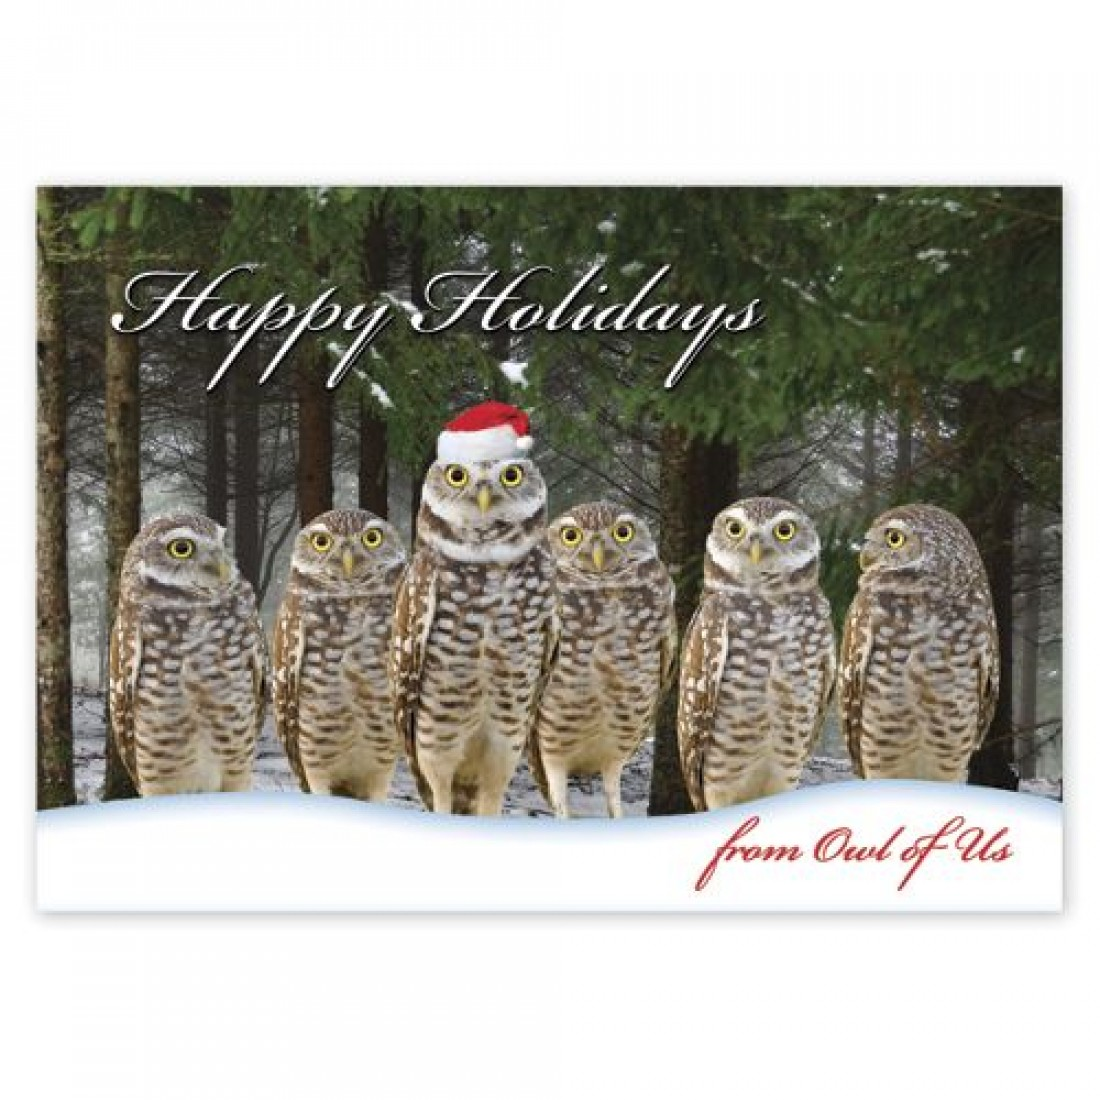 Owl of Us Christmas Cards HP14315 At Print EZ.